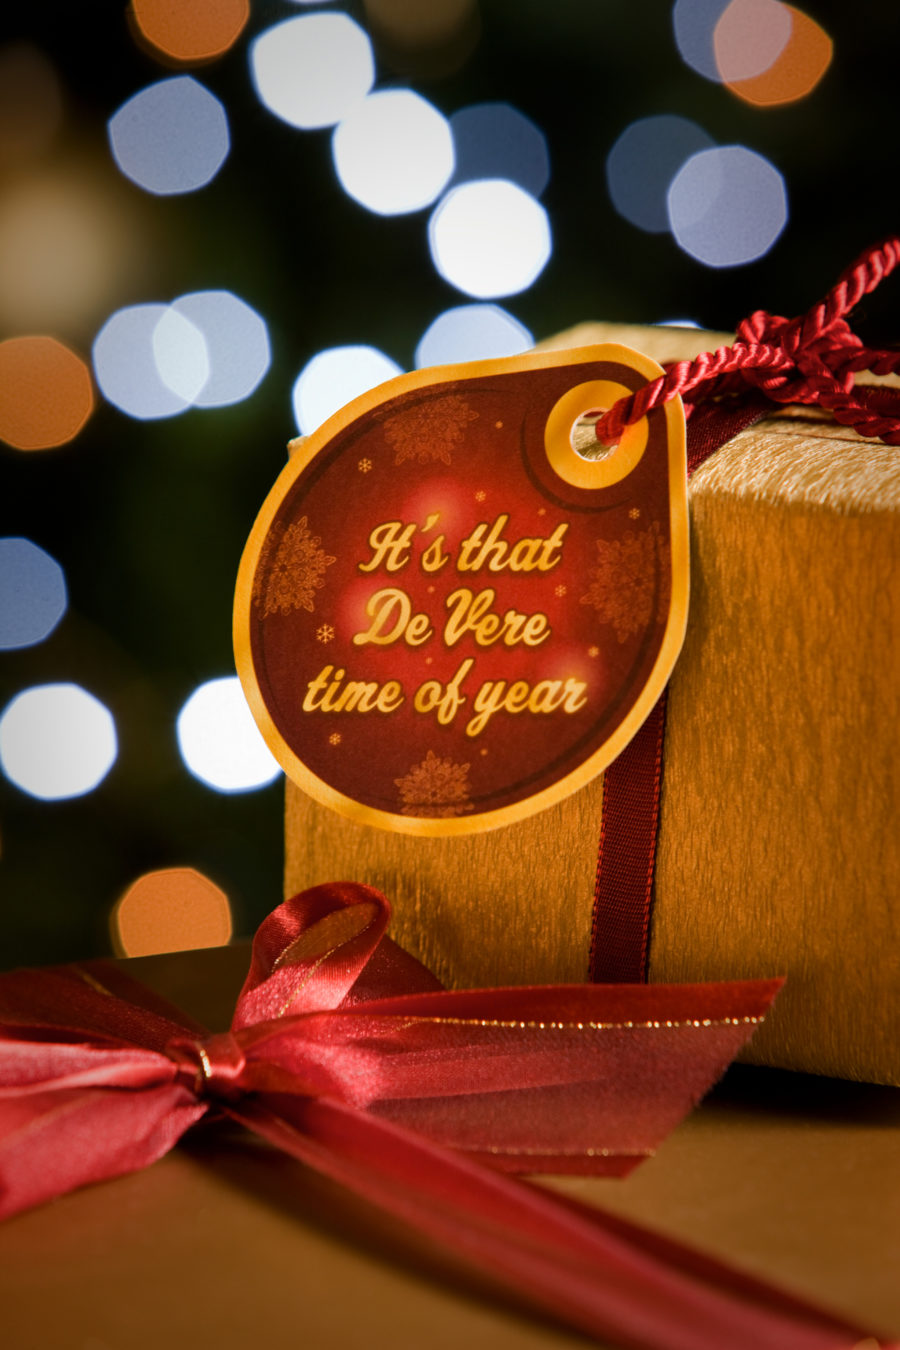 Christmas gifts, De Vere time of the year | by McAteer Photograph